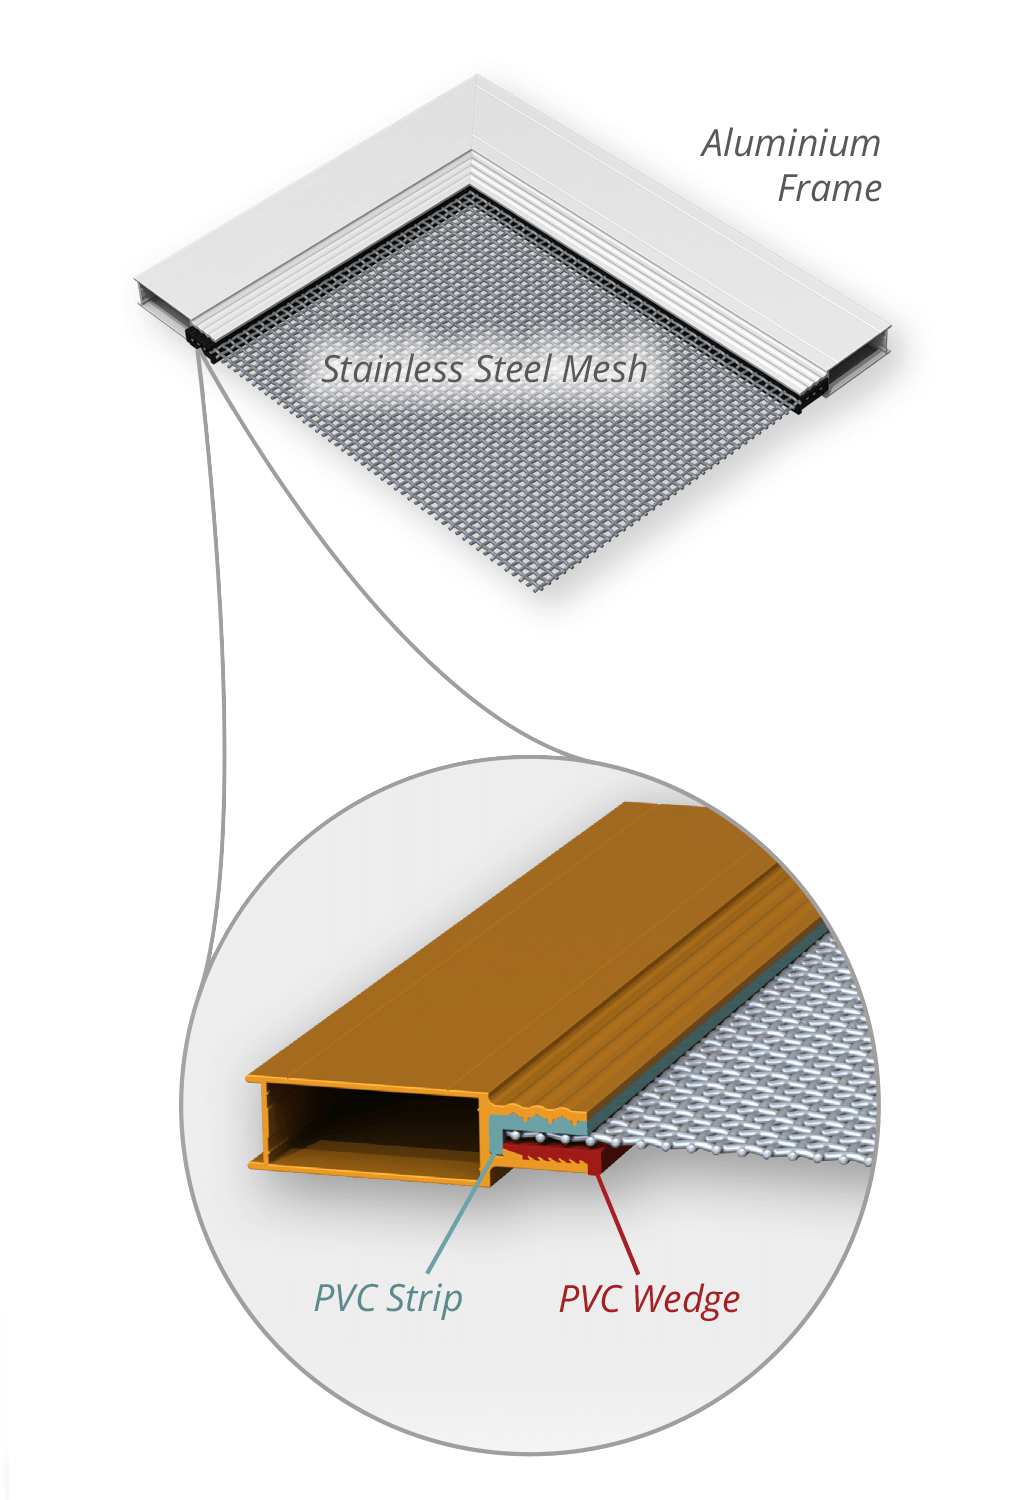 Security Screens QLD In House Security Screen - Product Benefits Image Cross-section of Aluminum Mesh Setup